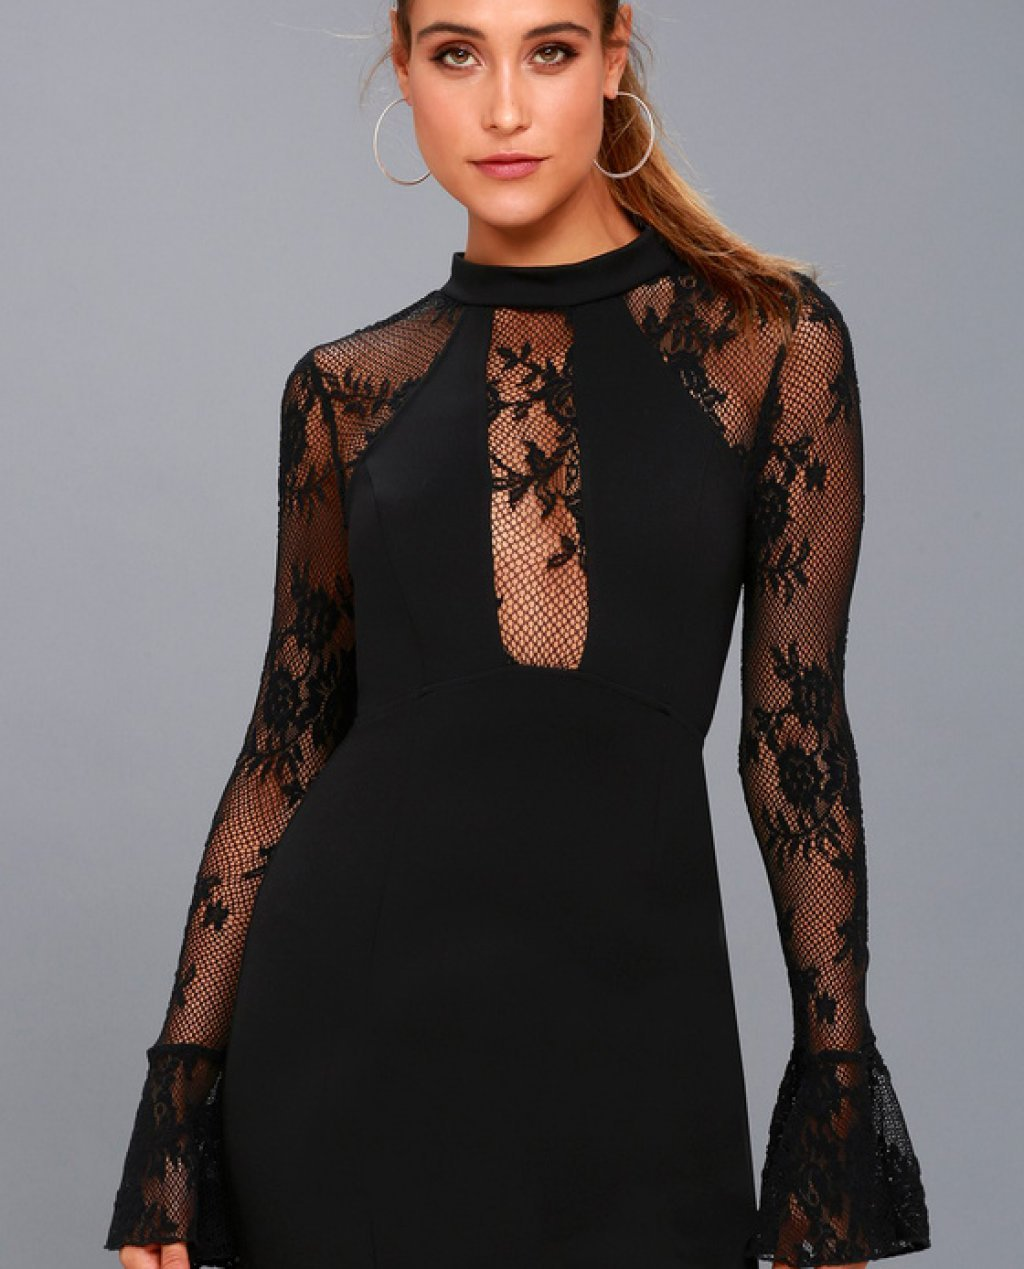 Its Now or Never Black Lace Bodycon Dress